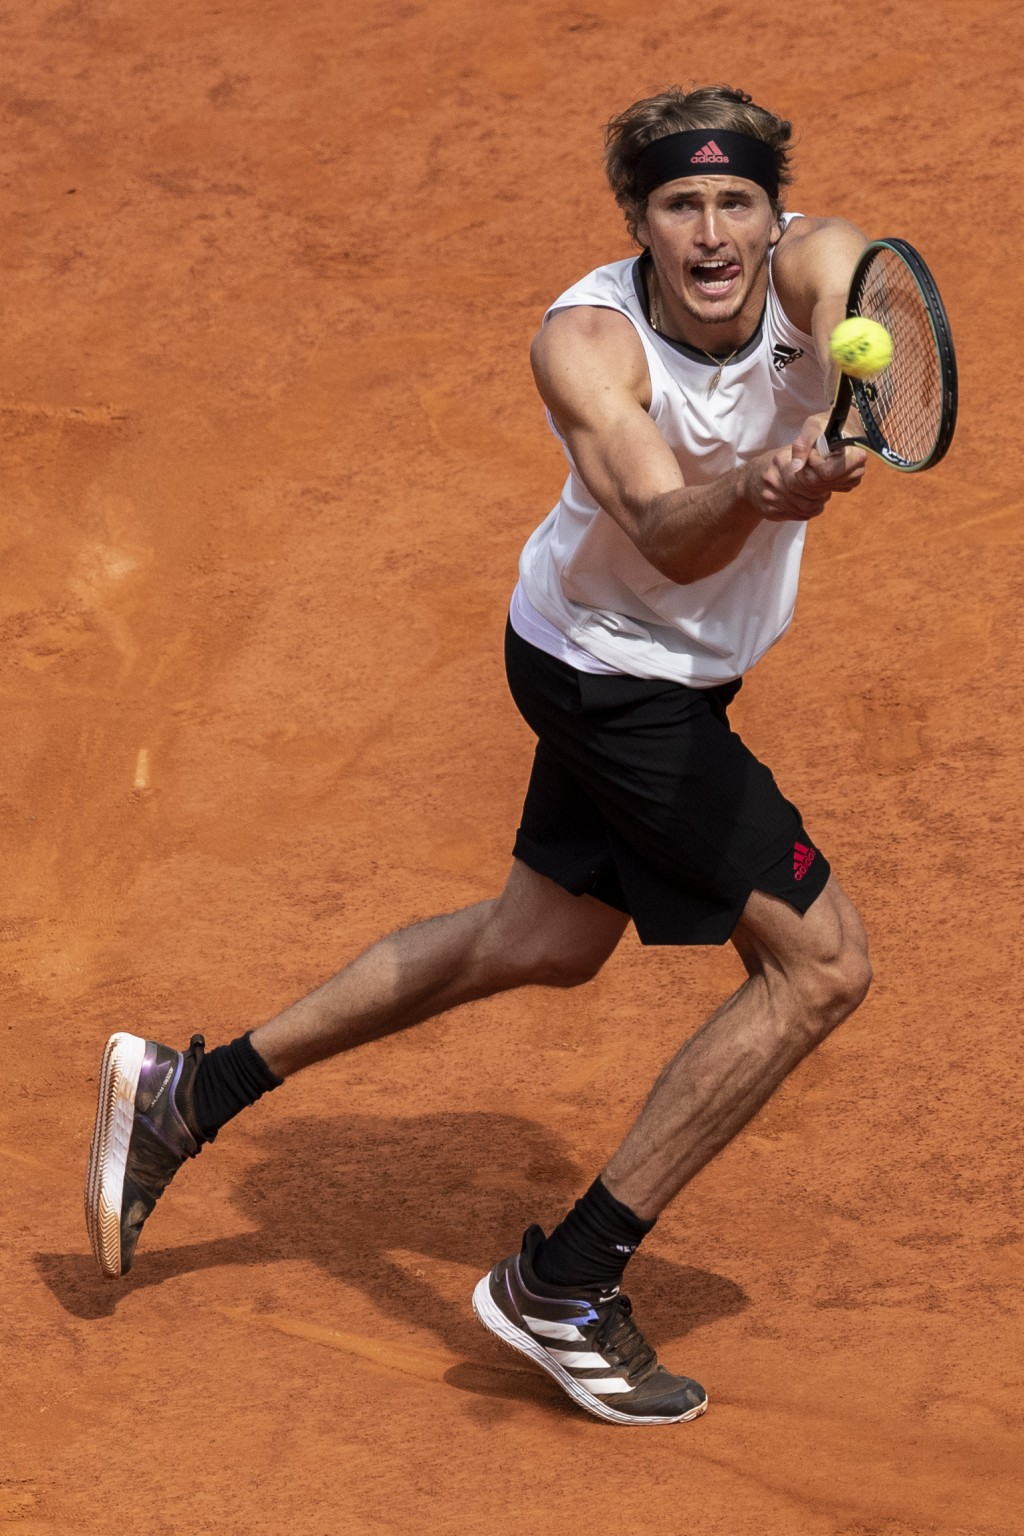 Germany's Alexander Zverev returns the ball to Austria's Dominic Thiem during their semi-final match at the Mutua Madrid Open tennis tournament in Mad...